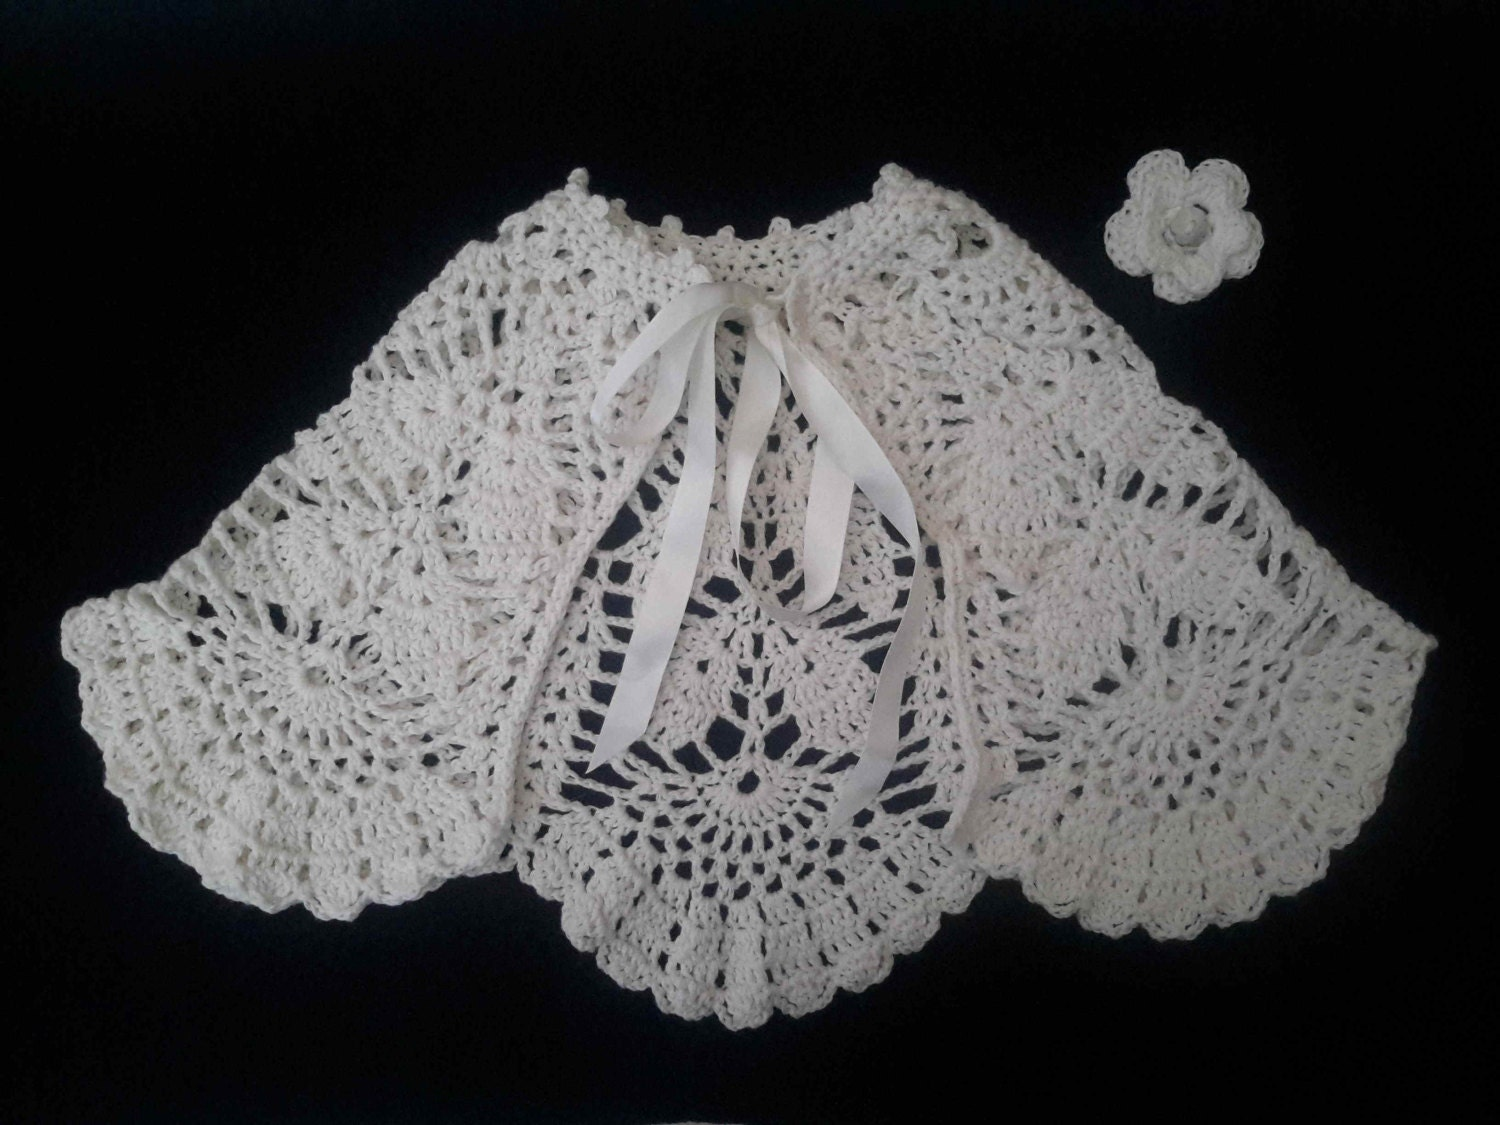 Fine cashmere mix lace baby cape heirloom cream baby cape sweater heirloom baptism christening outfit luxury baby gift. 61218 months